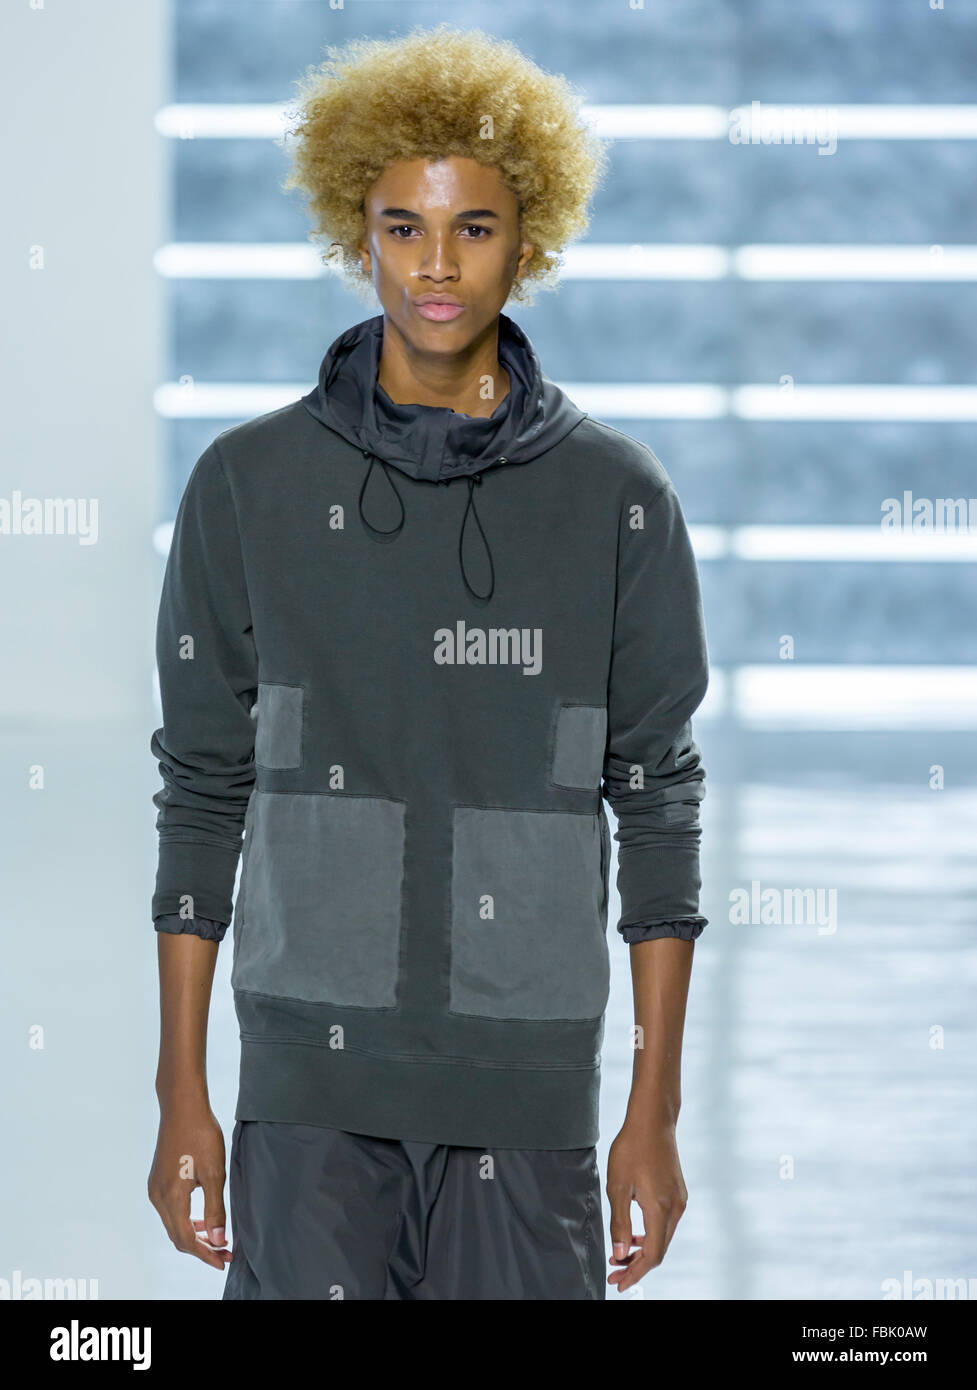 NEW YORK, NY - JULY 15, 2015: Michael Lockley walks the runway during John Elliott + CO show at NYFW Men's S/S 2016 - Stock Image